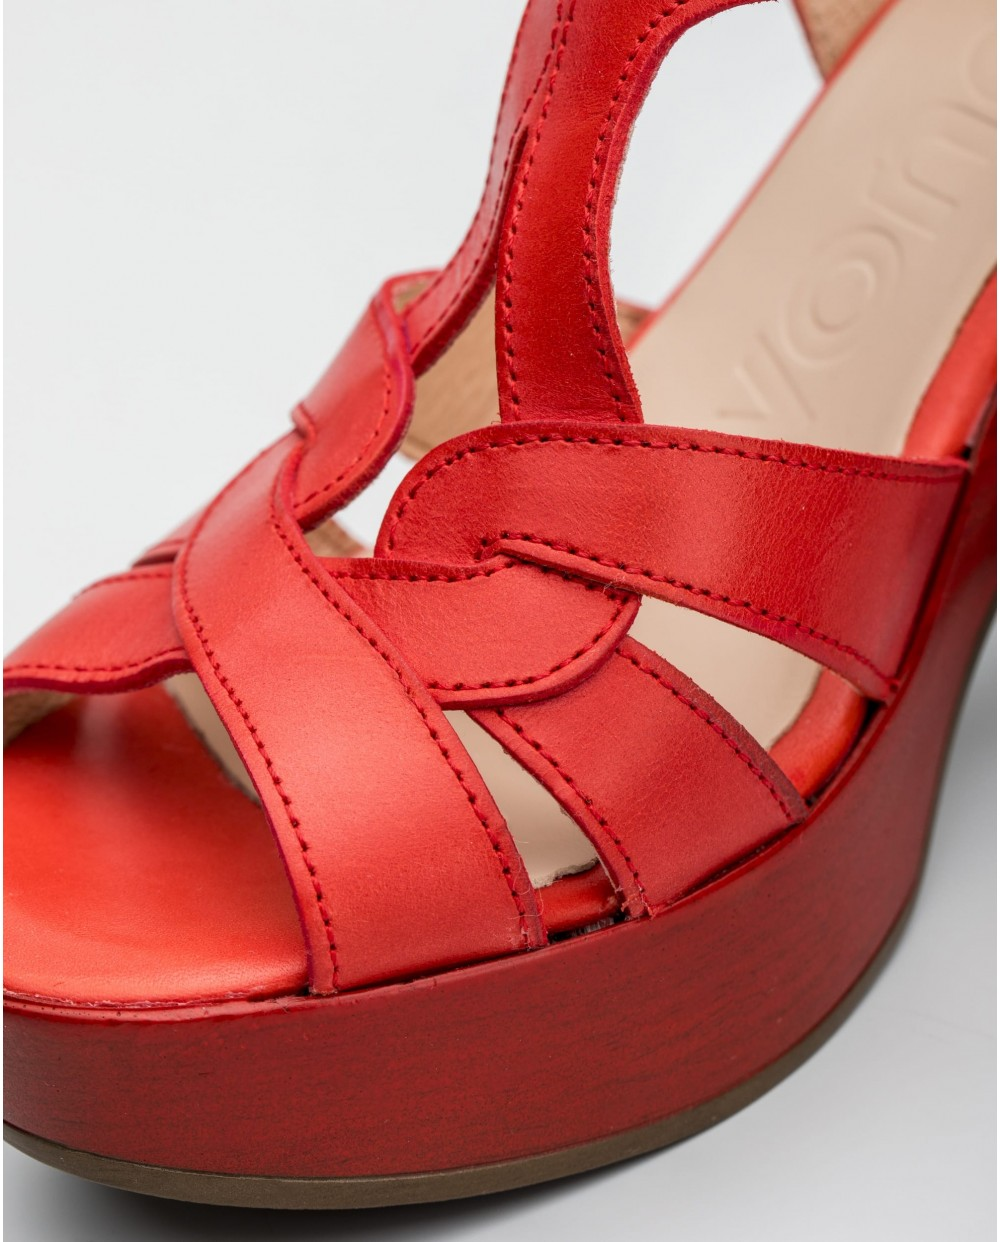 Wonders-Heels-Court shoe with ankle strap closure